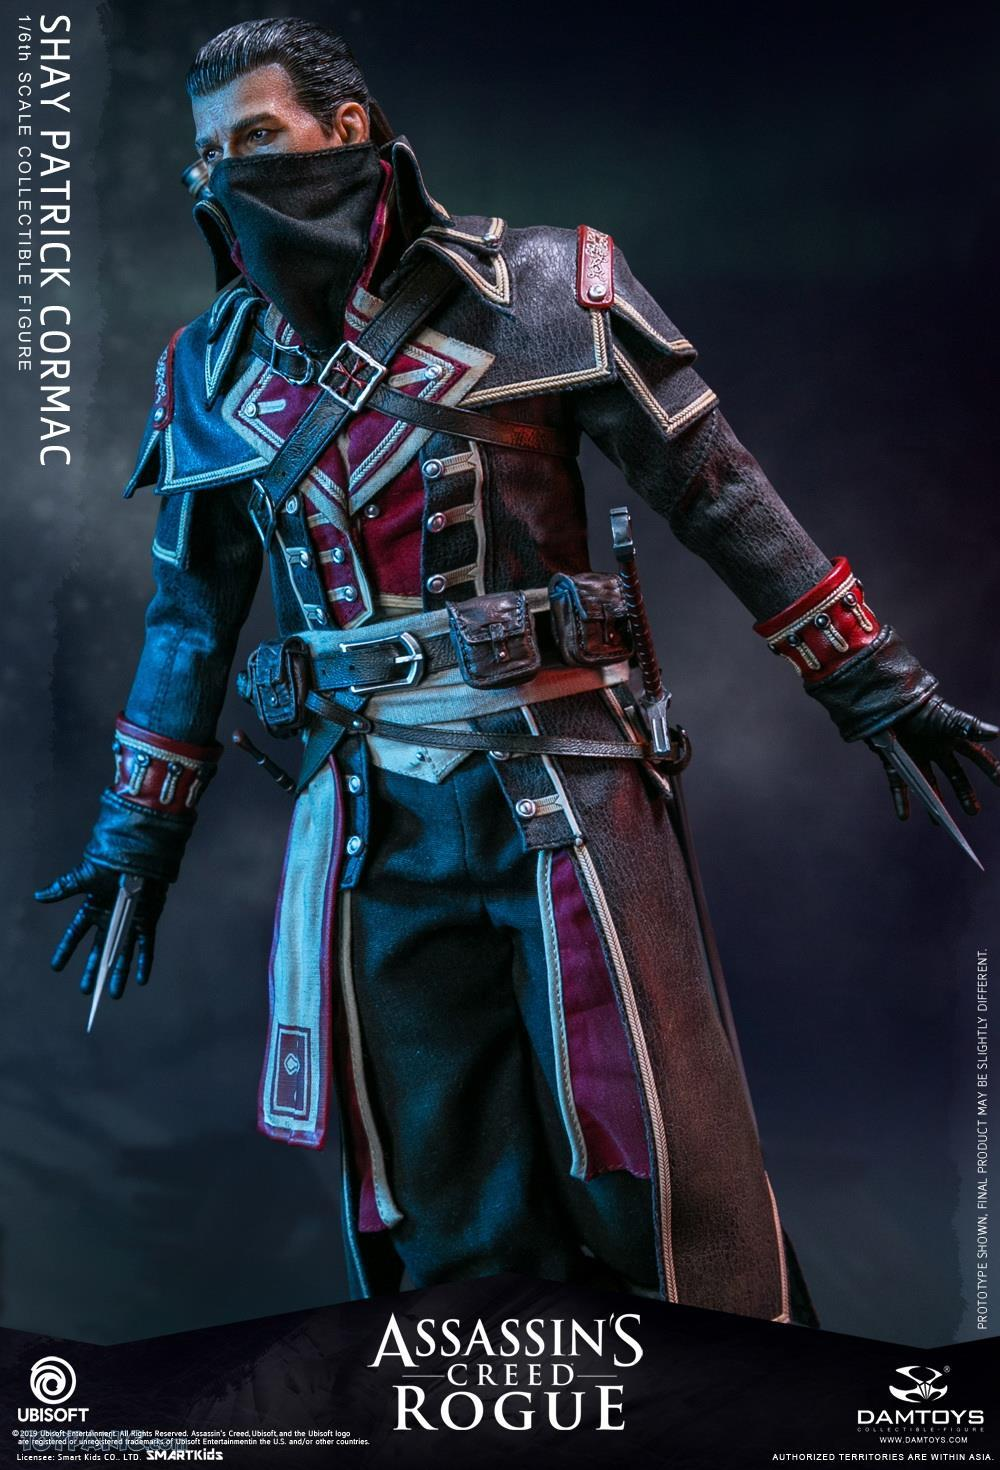 male - NEW PRODUCT: DAMTOYS: Assassins Creed Rogue - 1/6th scale Shay Patrick Cormac Collectible Figure 82220113